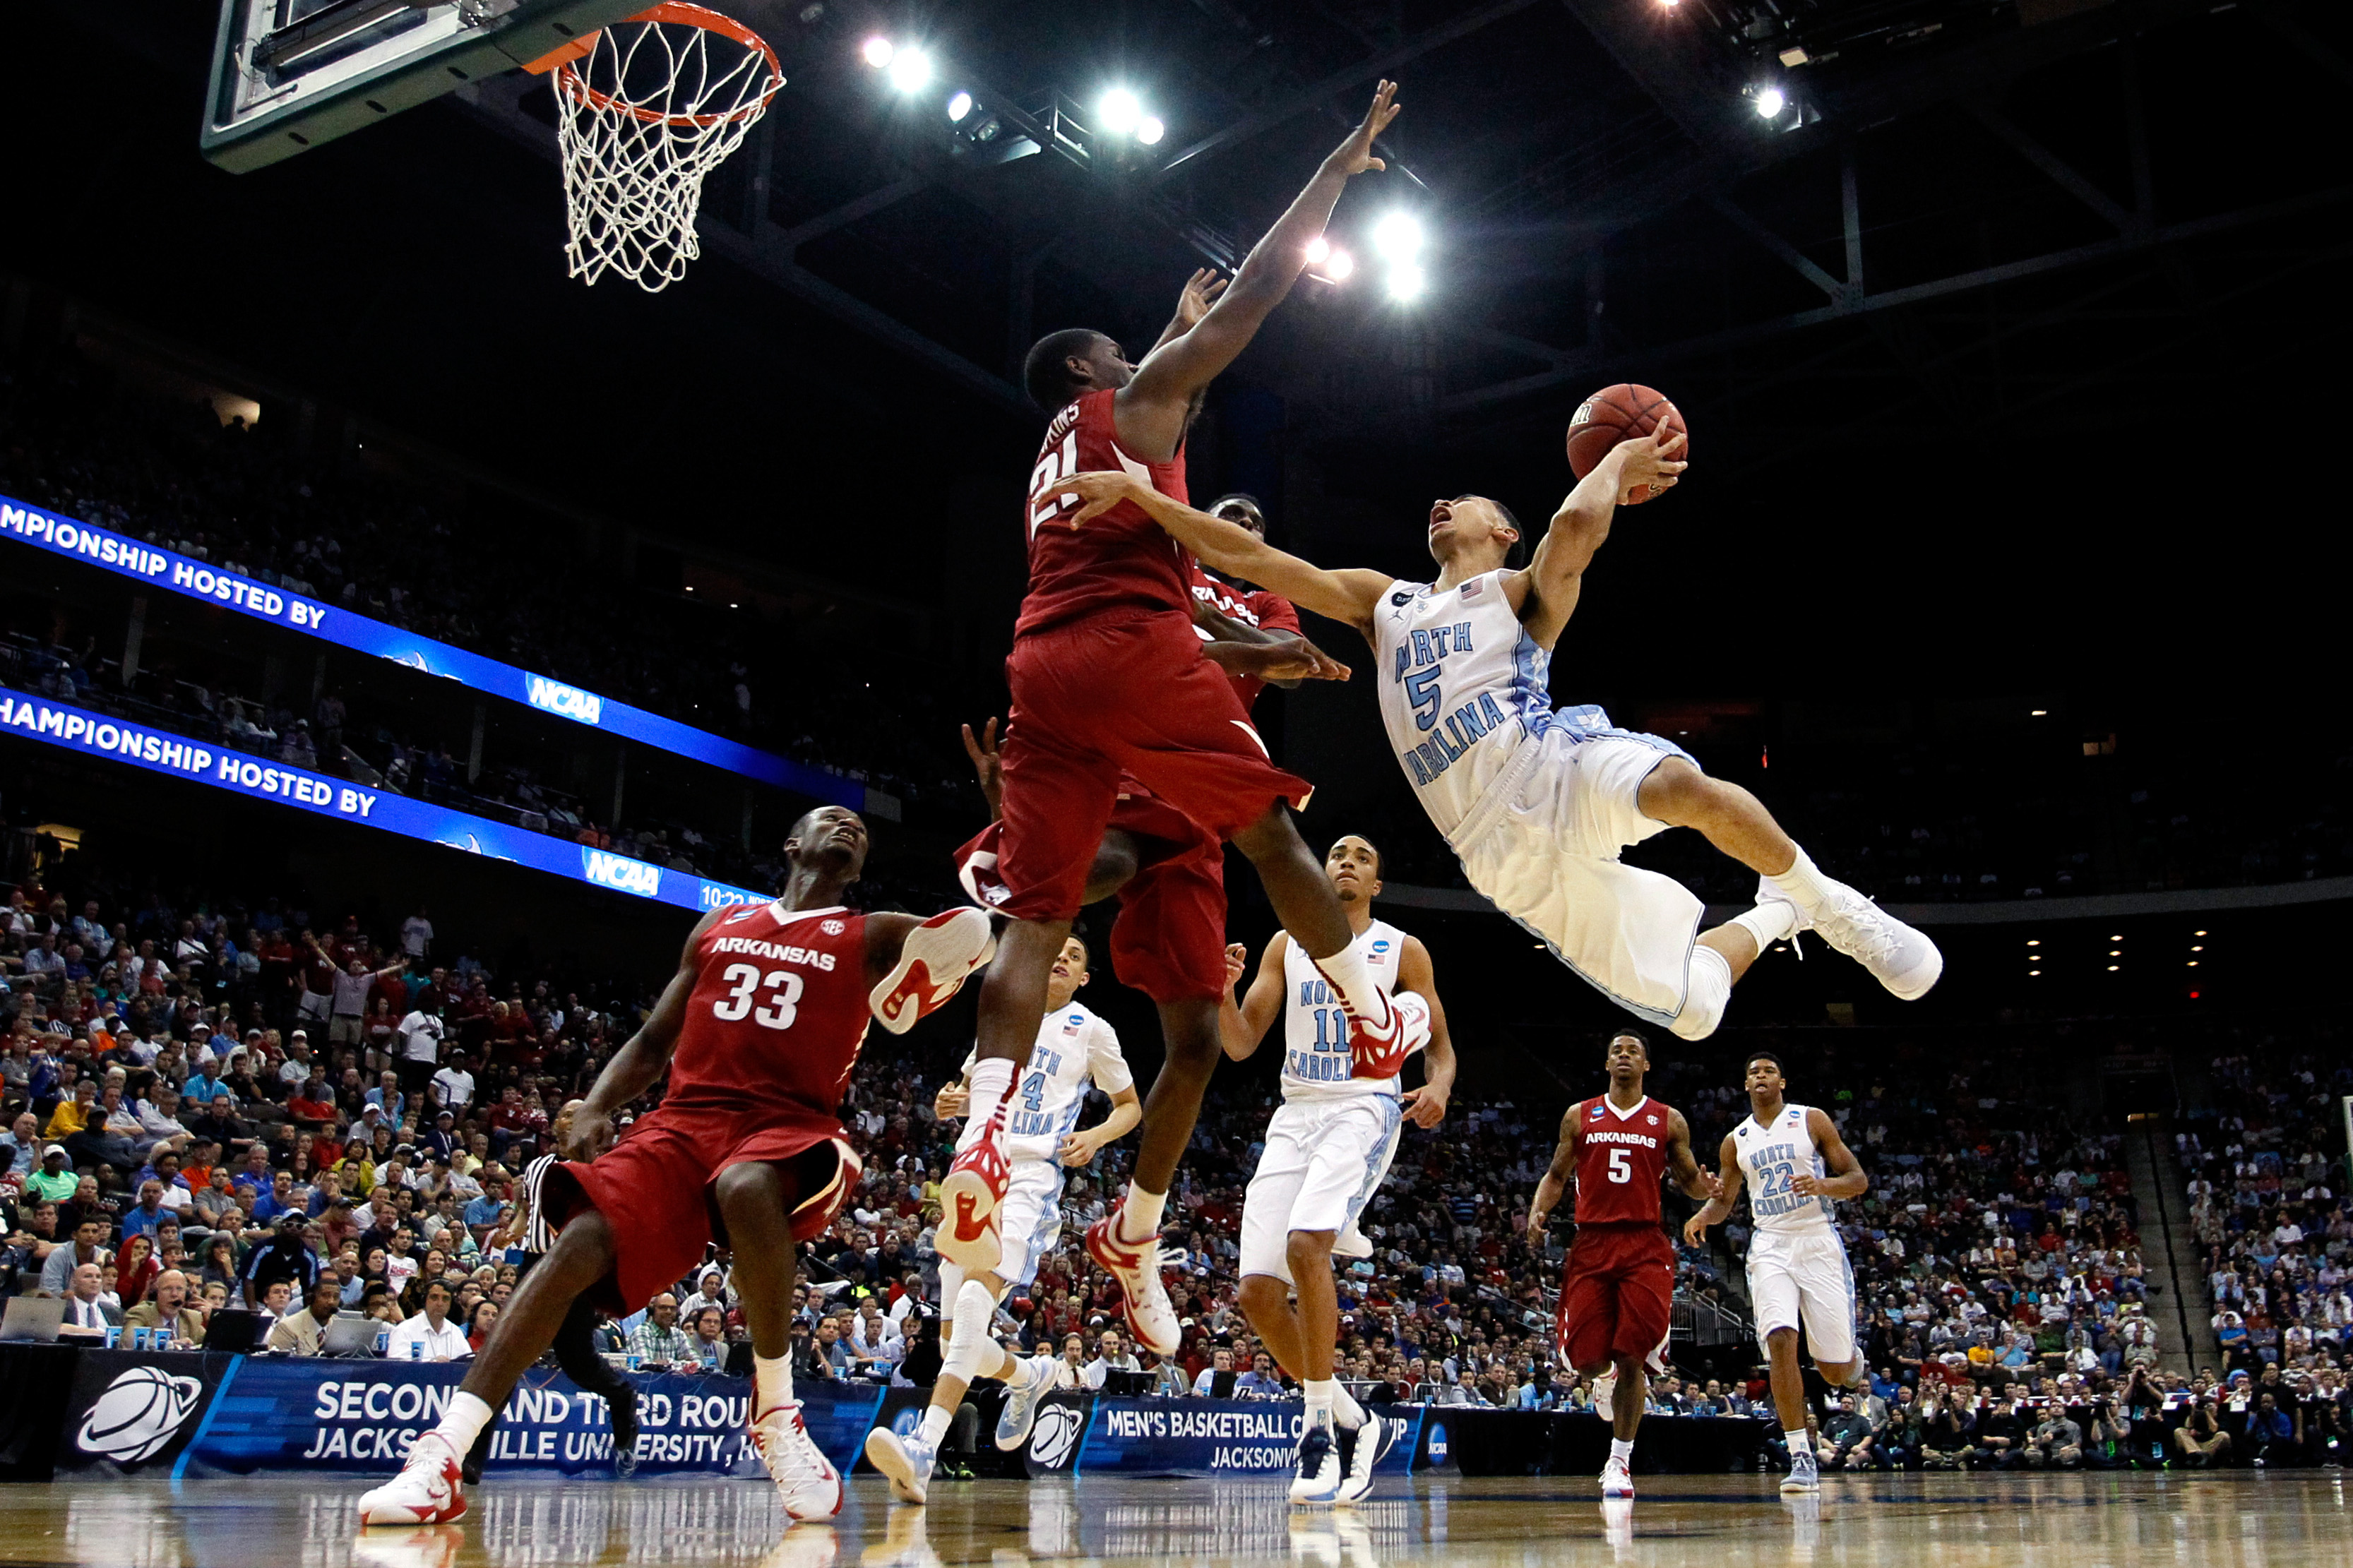 during the third round of the 2015 NCAA Men's Basketball Tournament at Jacksonville Veterans Memorial Arena on March 21, 2015 in Jacksonville, Florida.